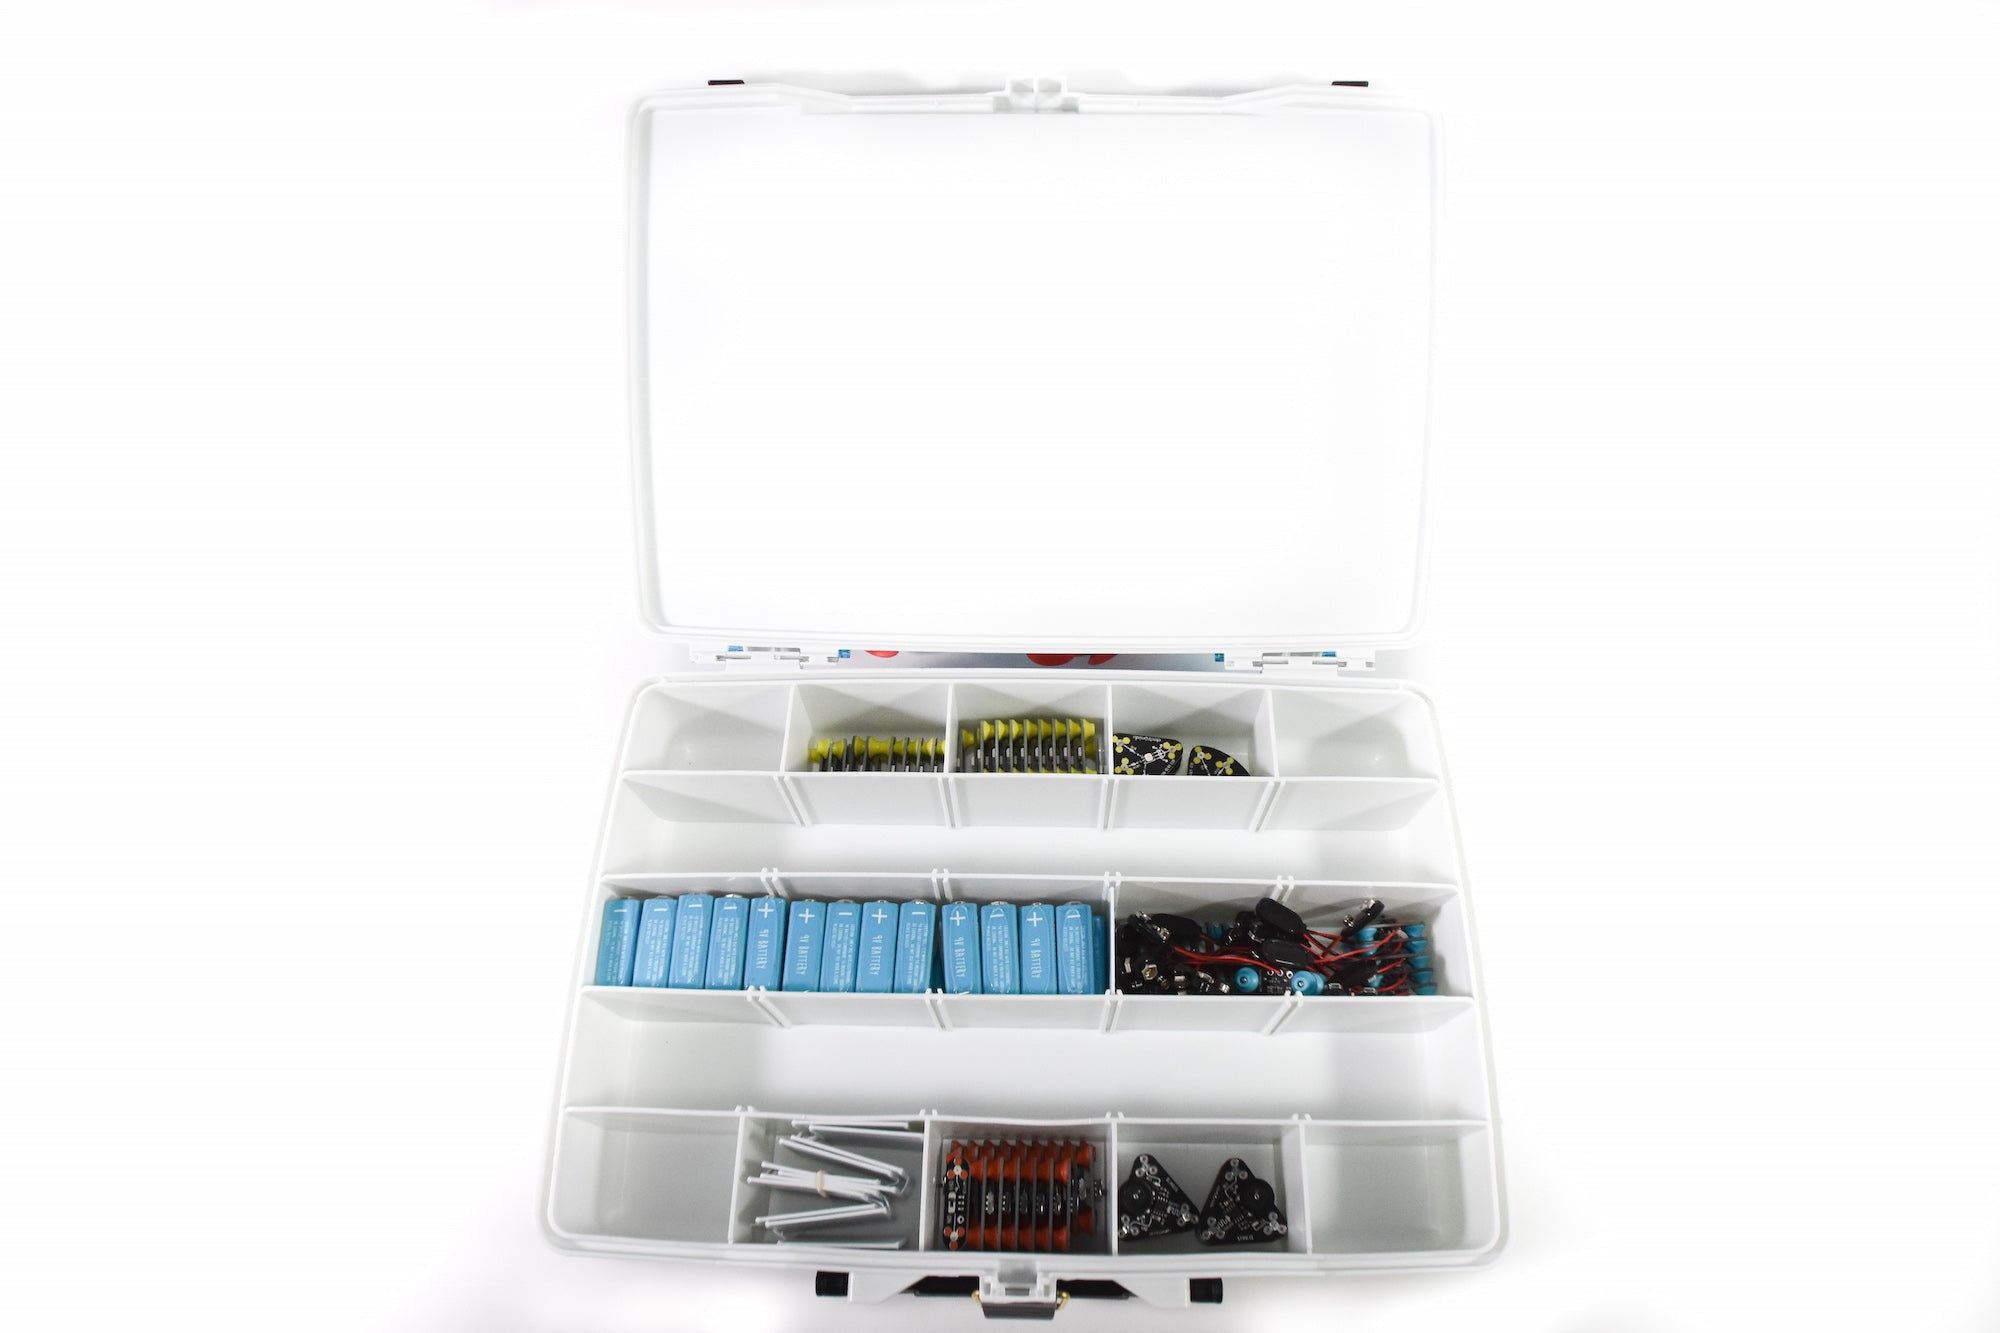 The Circuit Scribe Intro Classroom Kit opened to display included circuit modules.